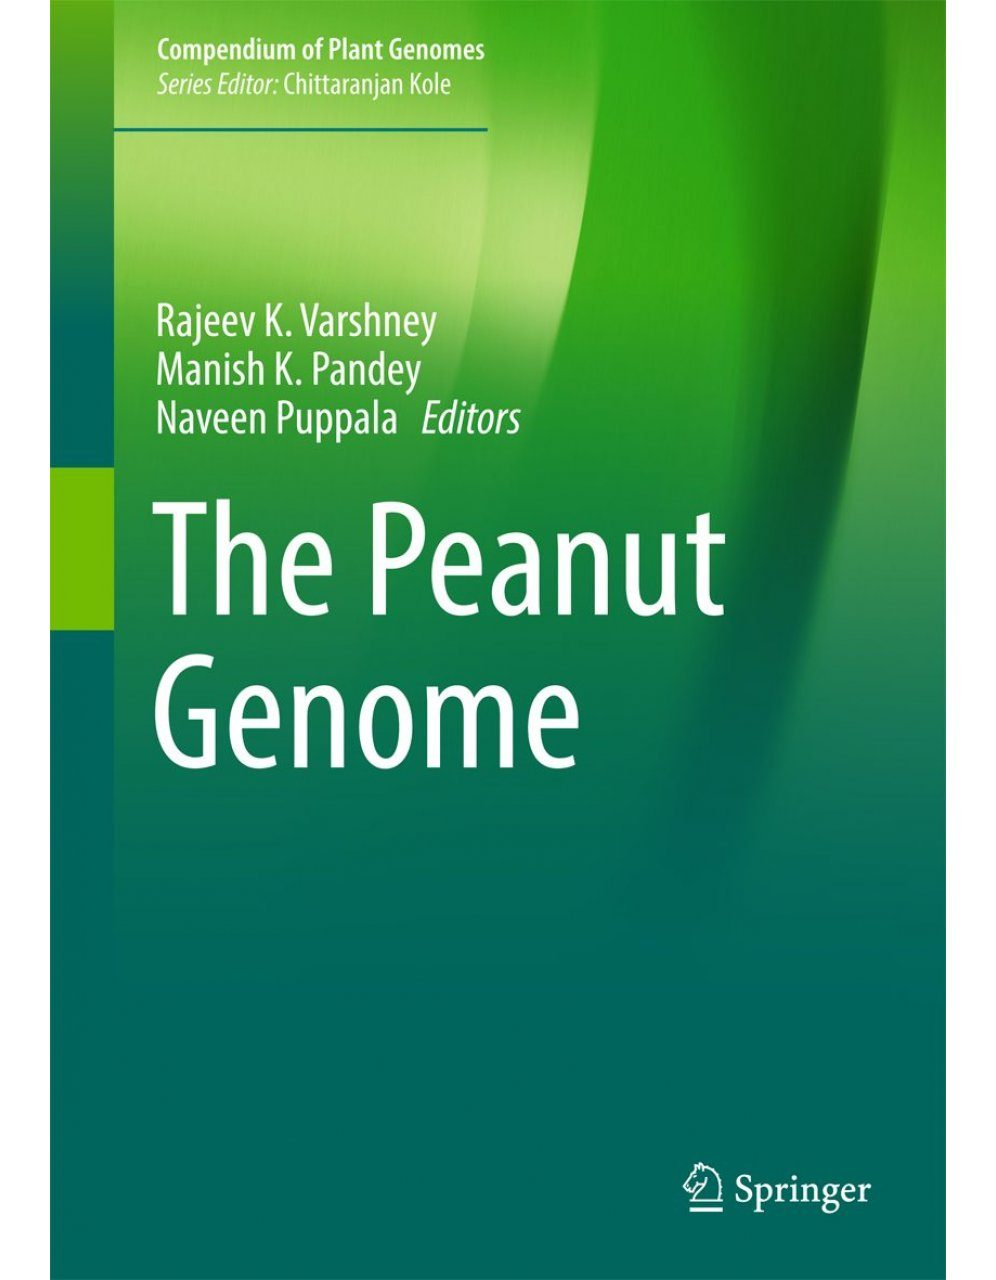 The Peanut Genome